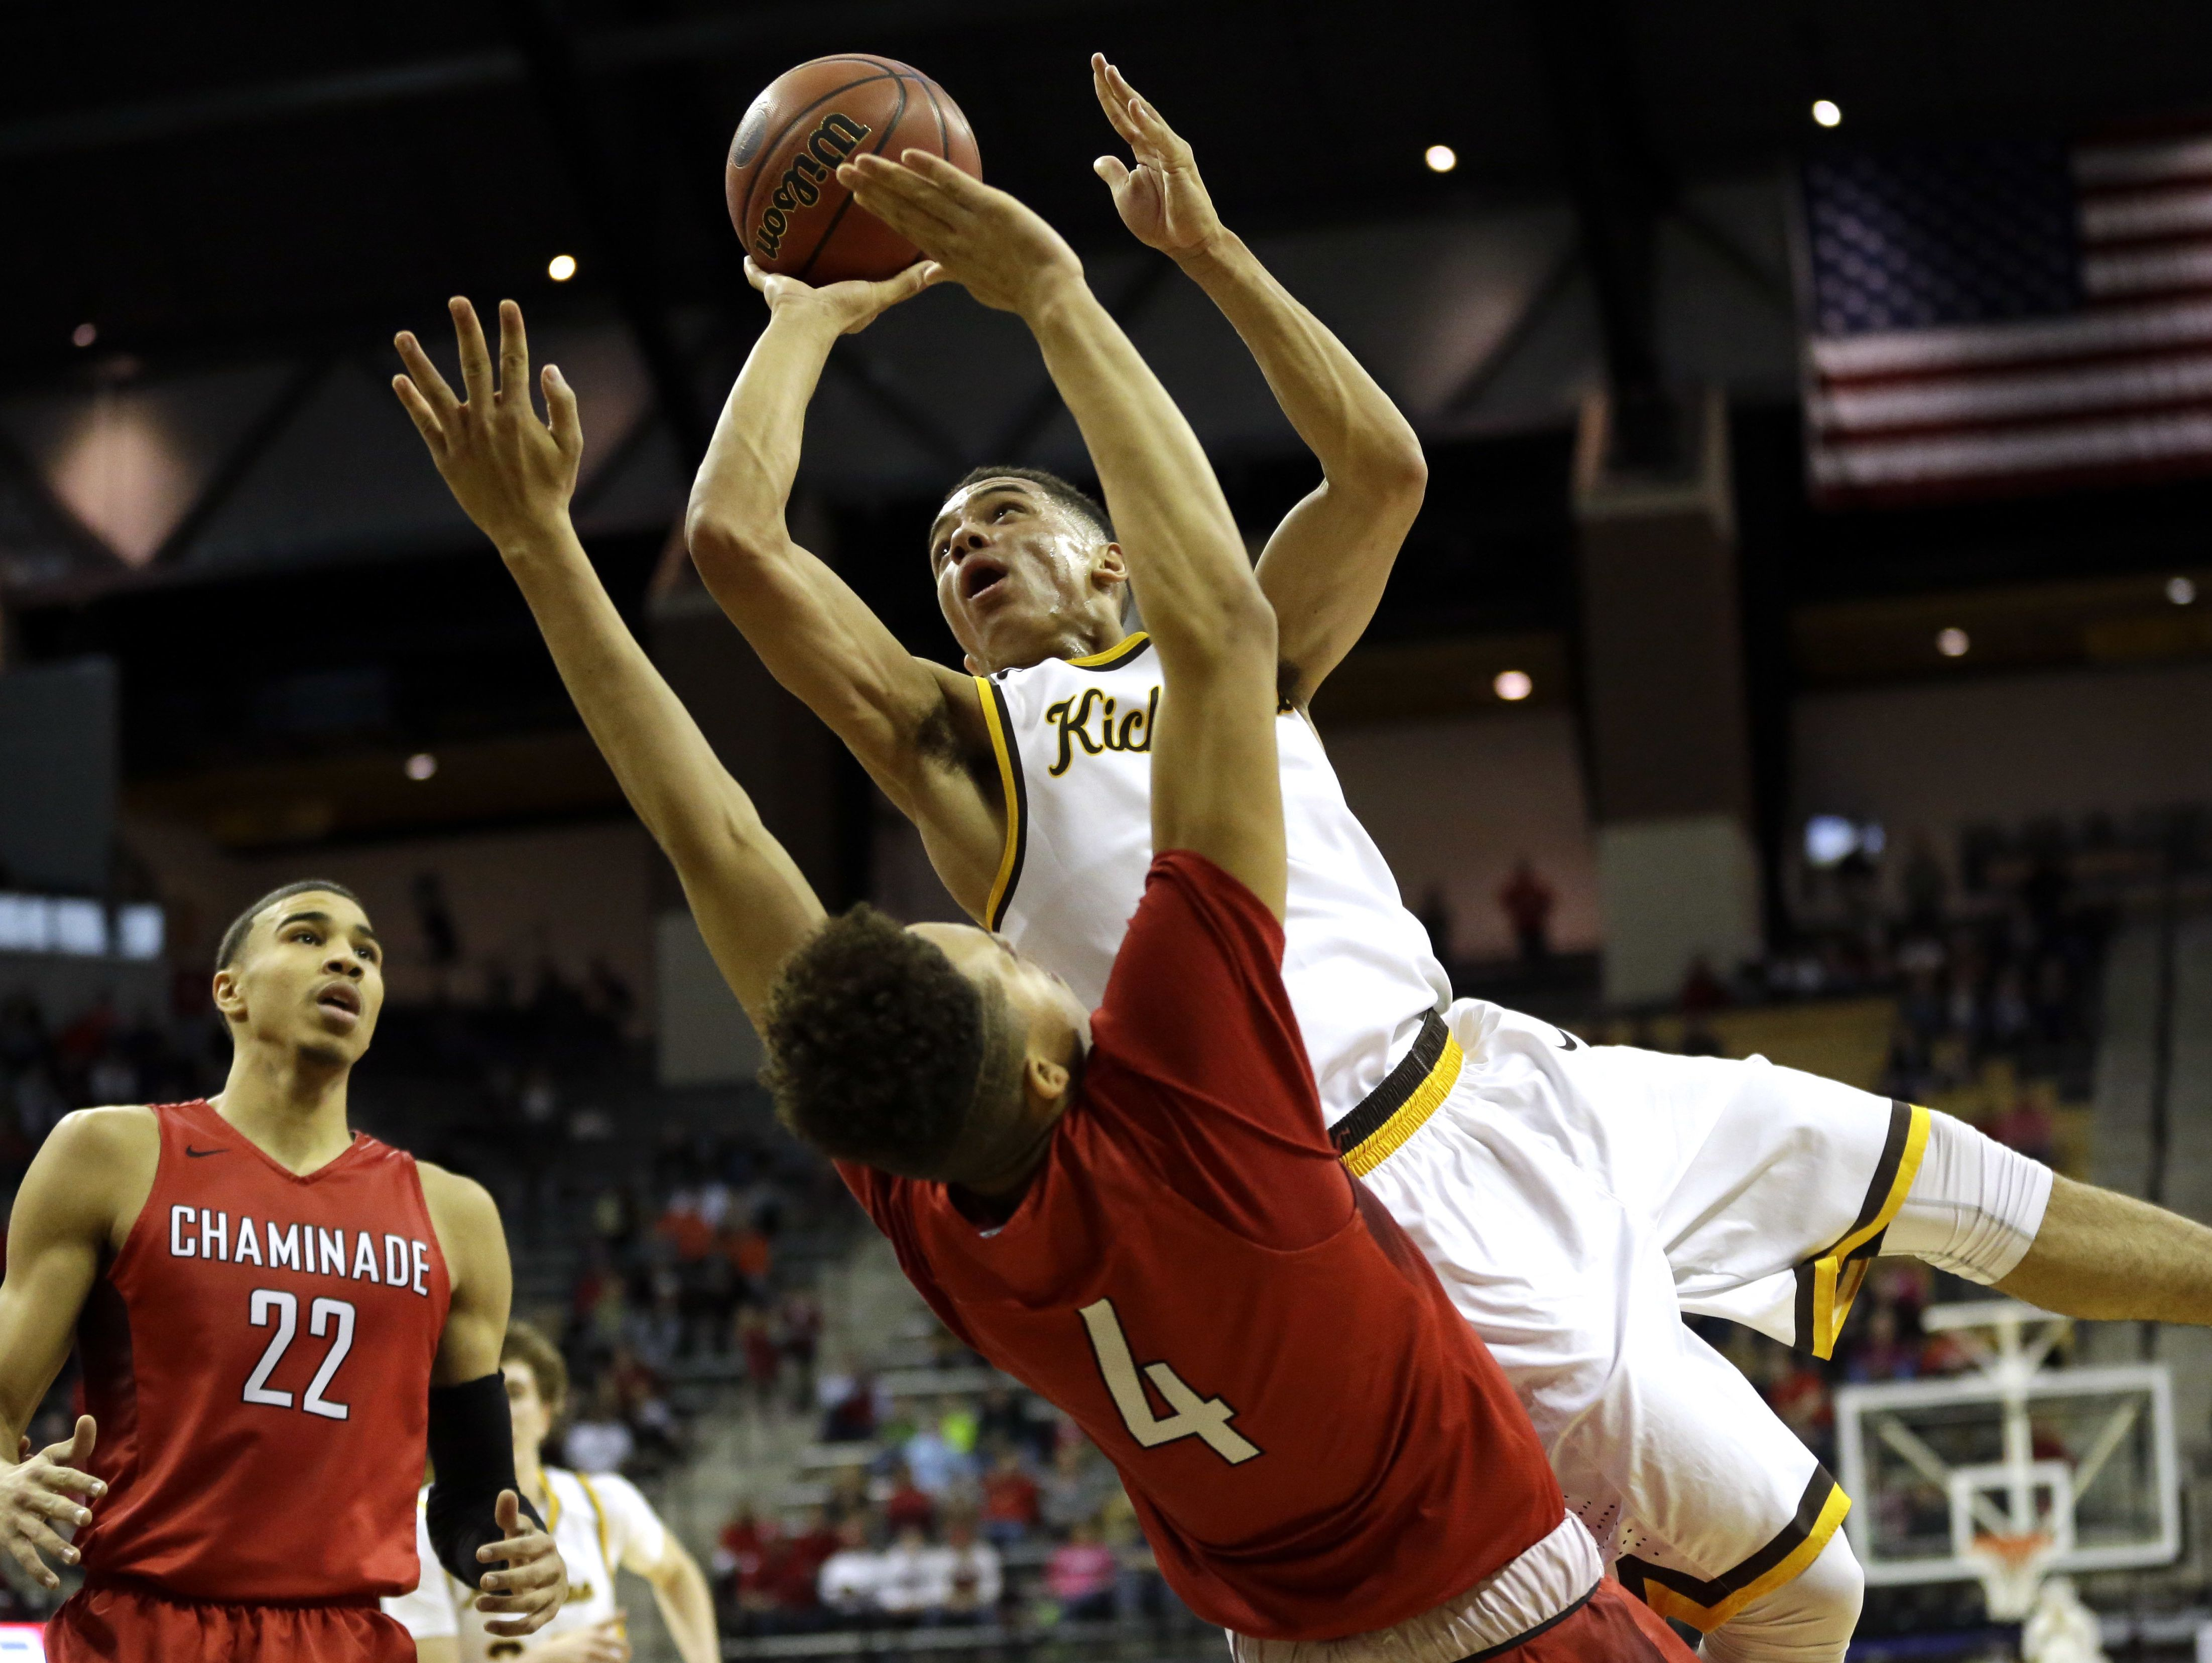 Kickapoo's Cameron Davis, top center, is fouled on his way to the basket by Chaminade's Jericole Hellems (4) as Chaminade's Jayson Tatum (22) watches during the second half of the 2016 Missouri Class 5 boys' high school championship game in Columbia.